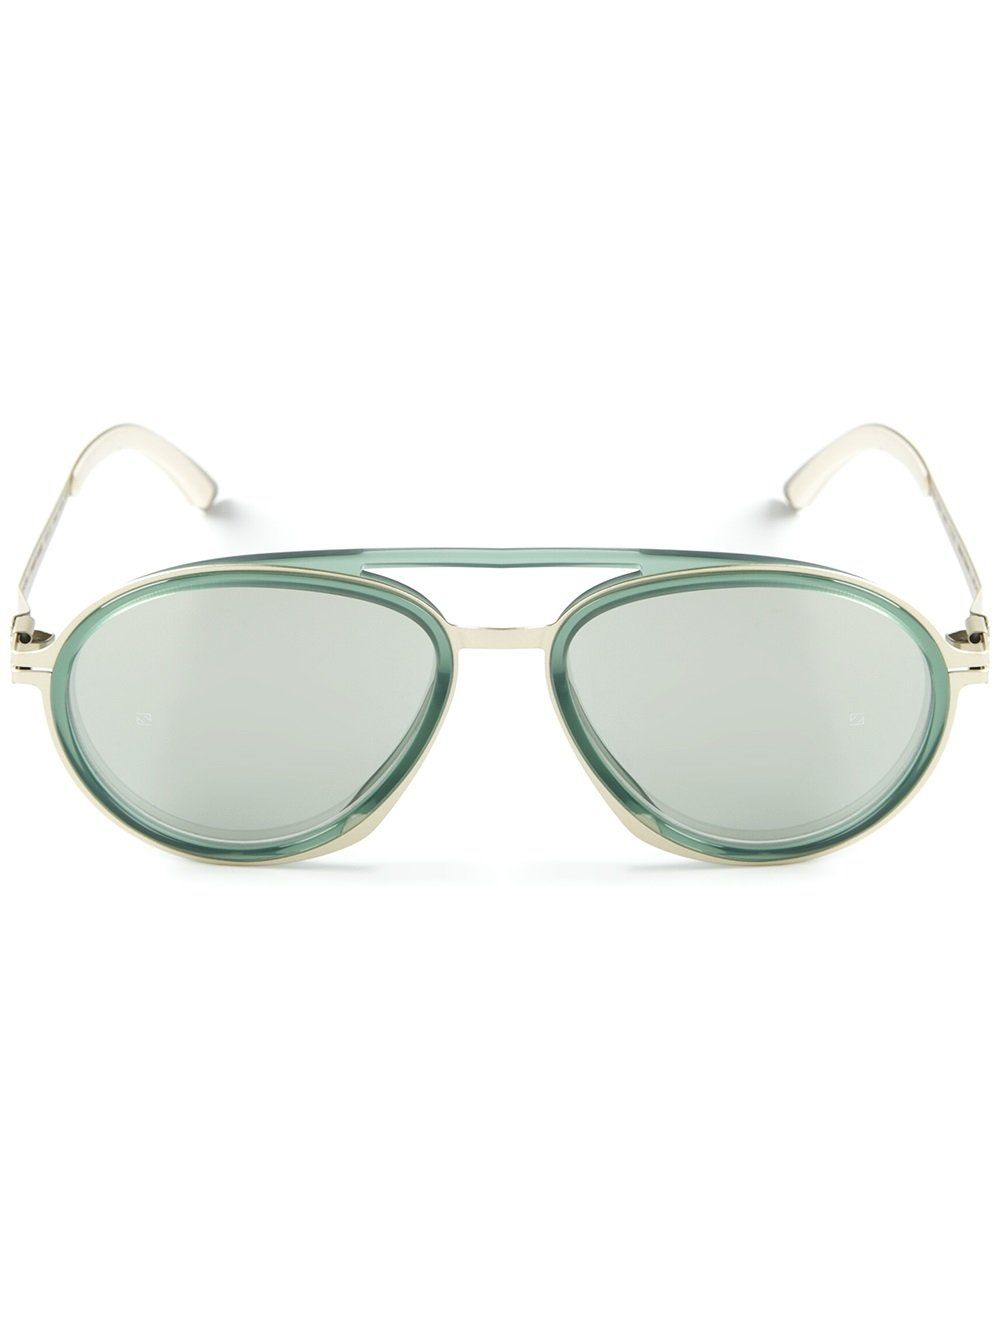 Mykita aviator sunglasses | glasses | Pinterest | Brille